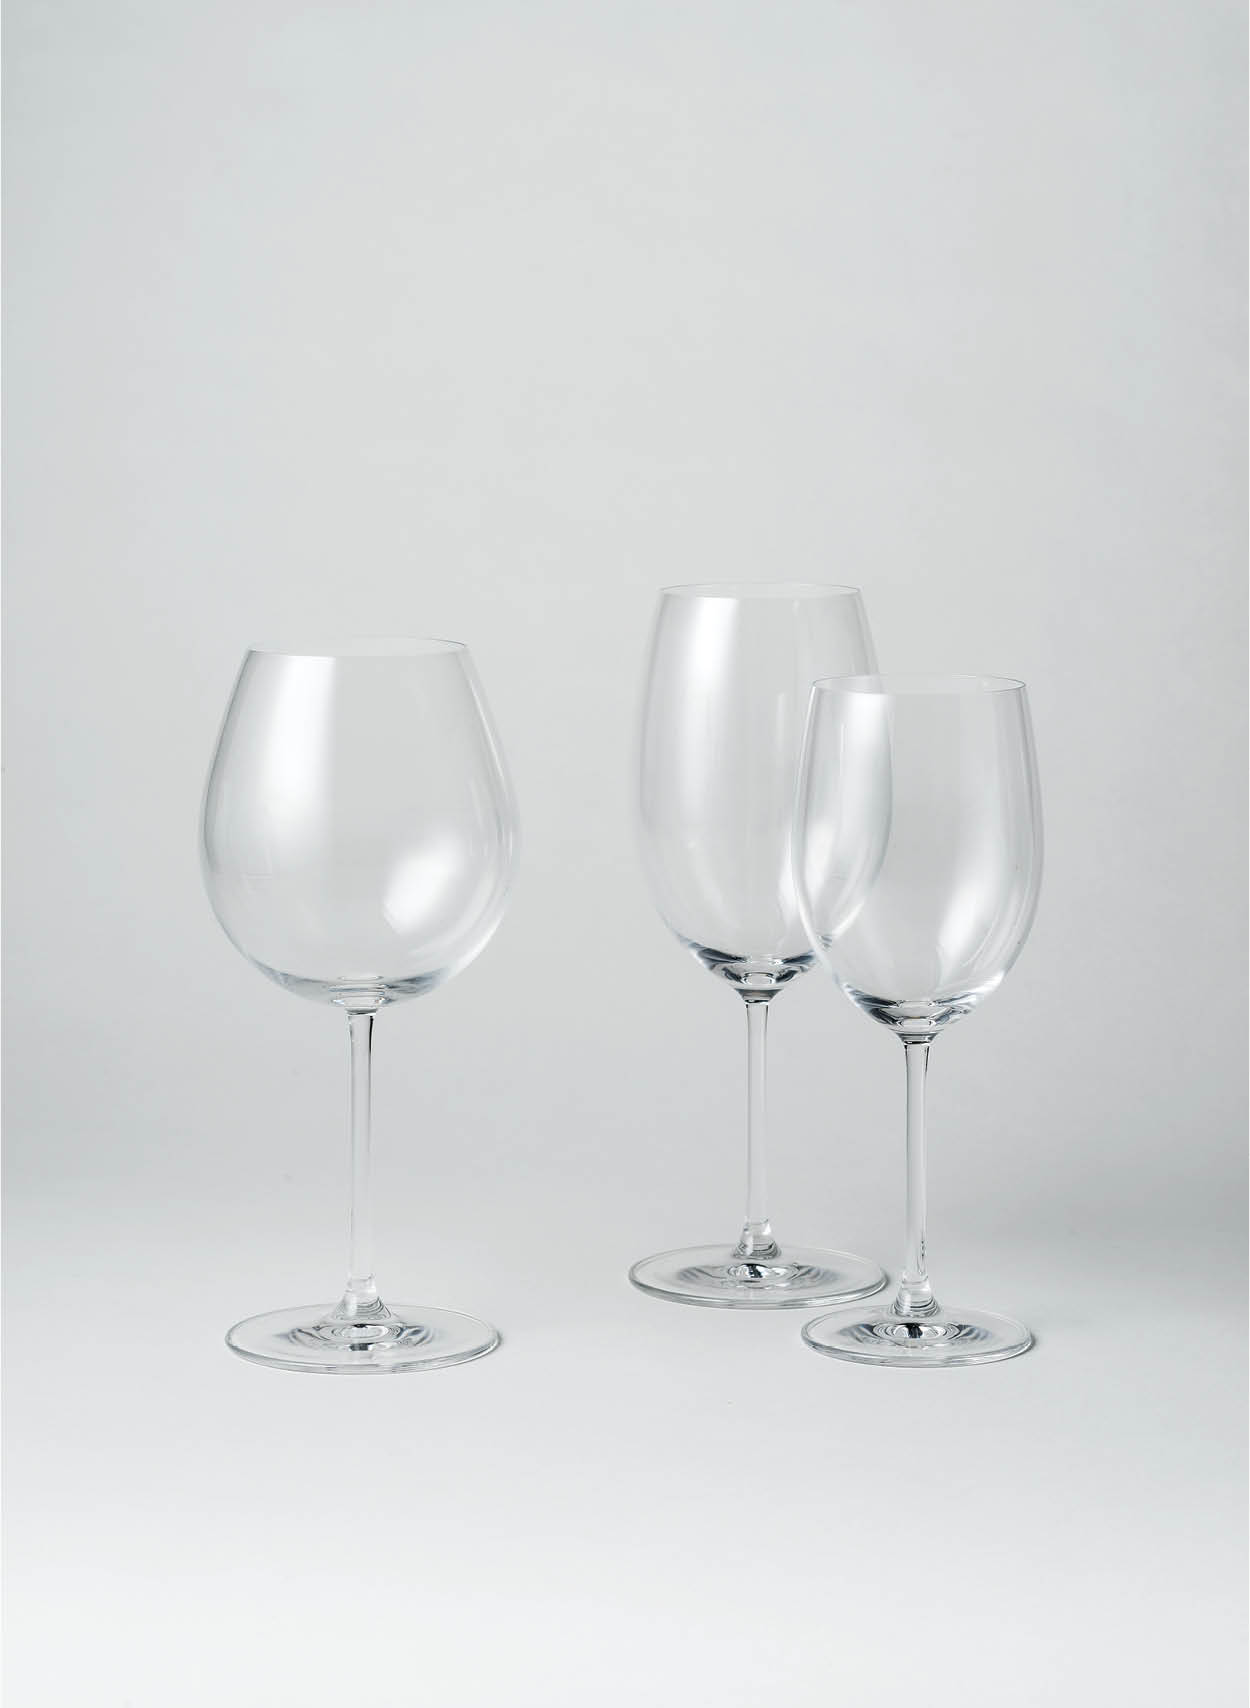 Glassware s/2 from $54.90